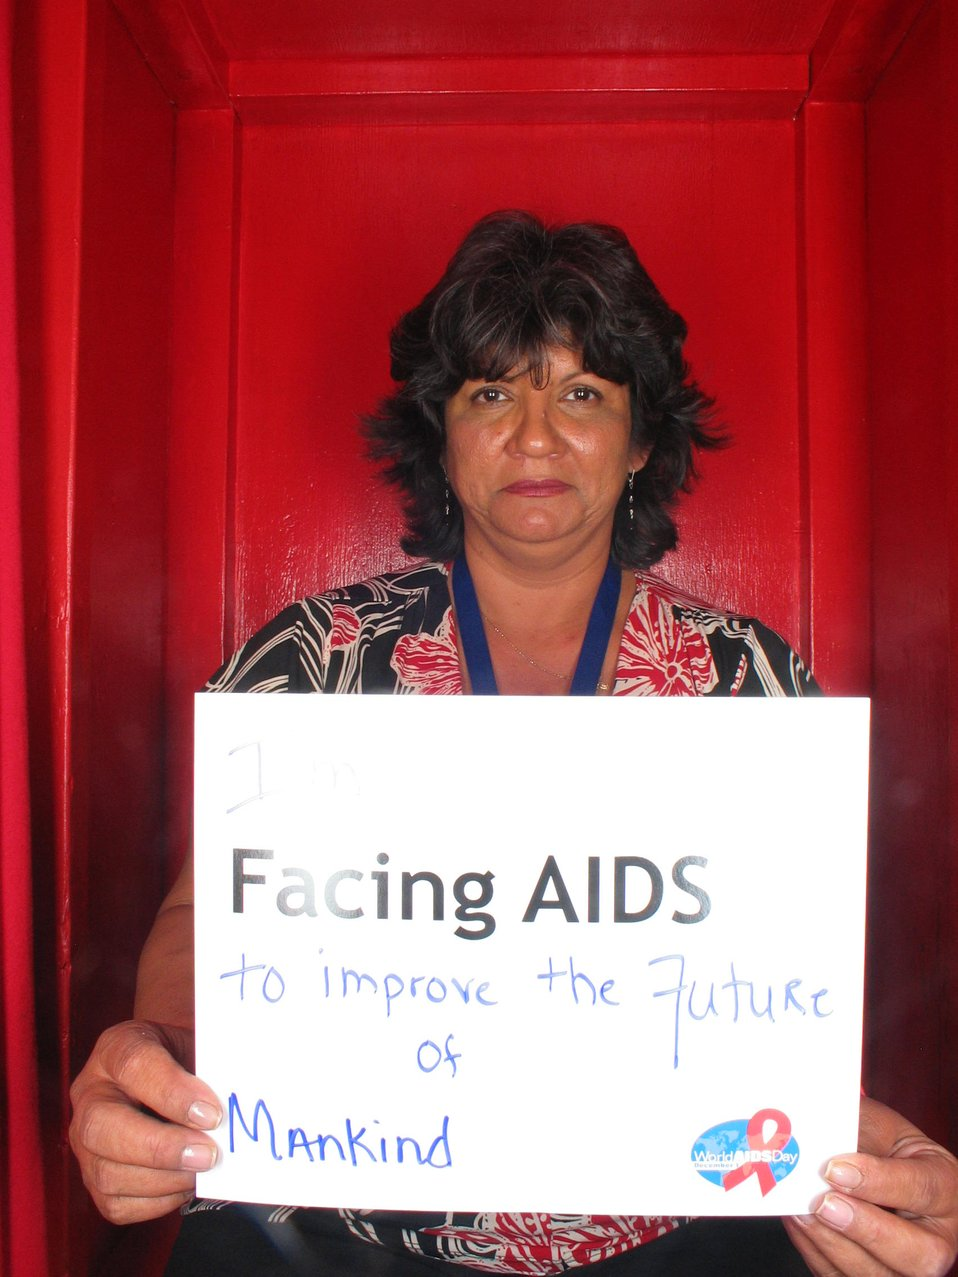 I'm Facing AIDS to improve the future of mankind.